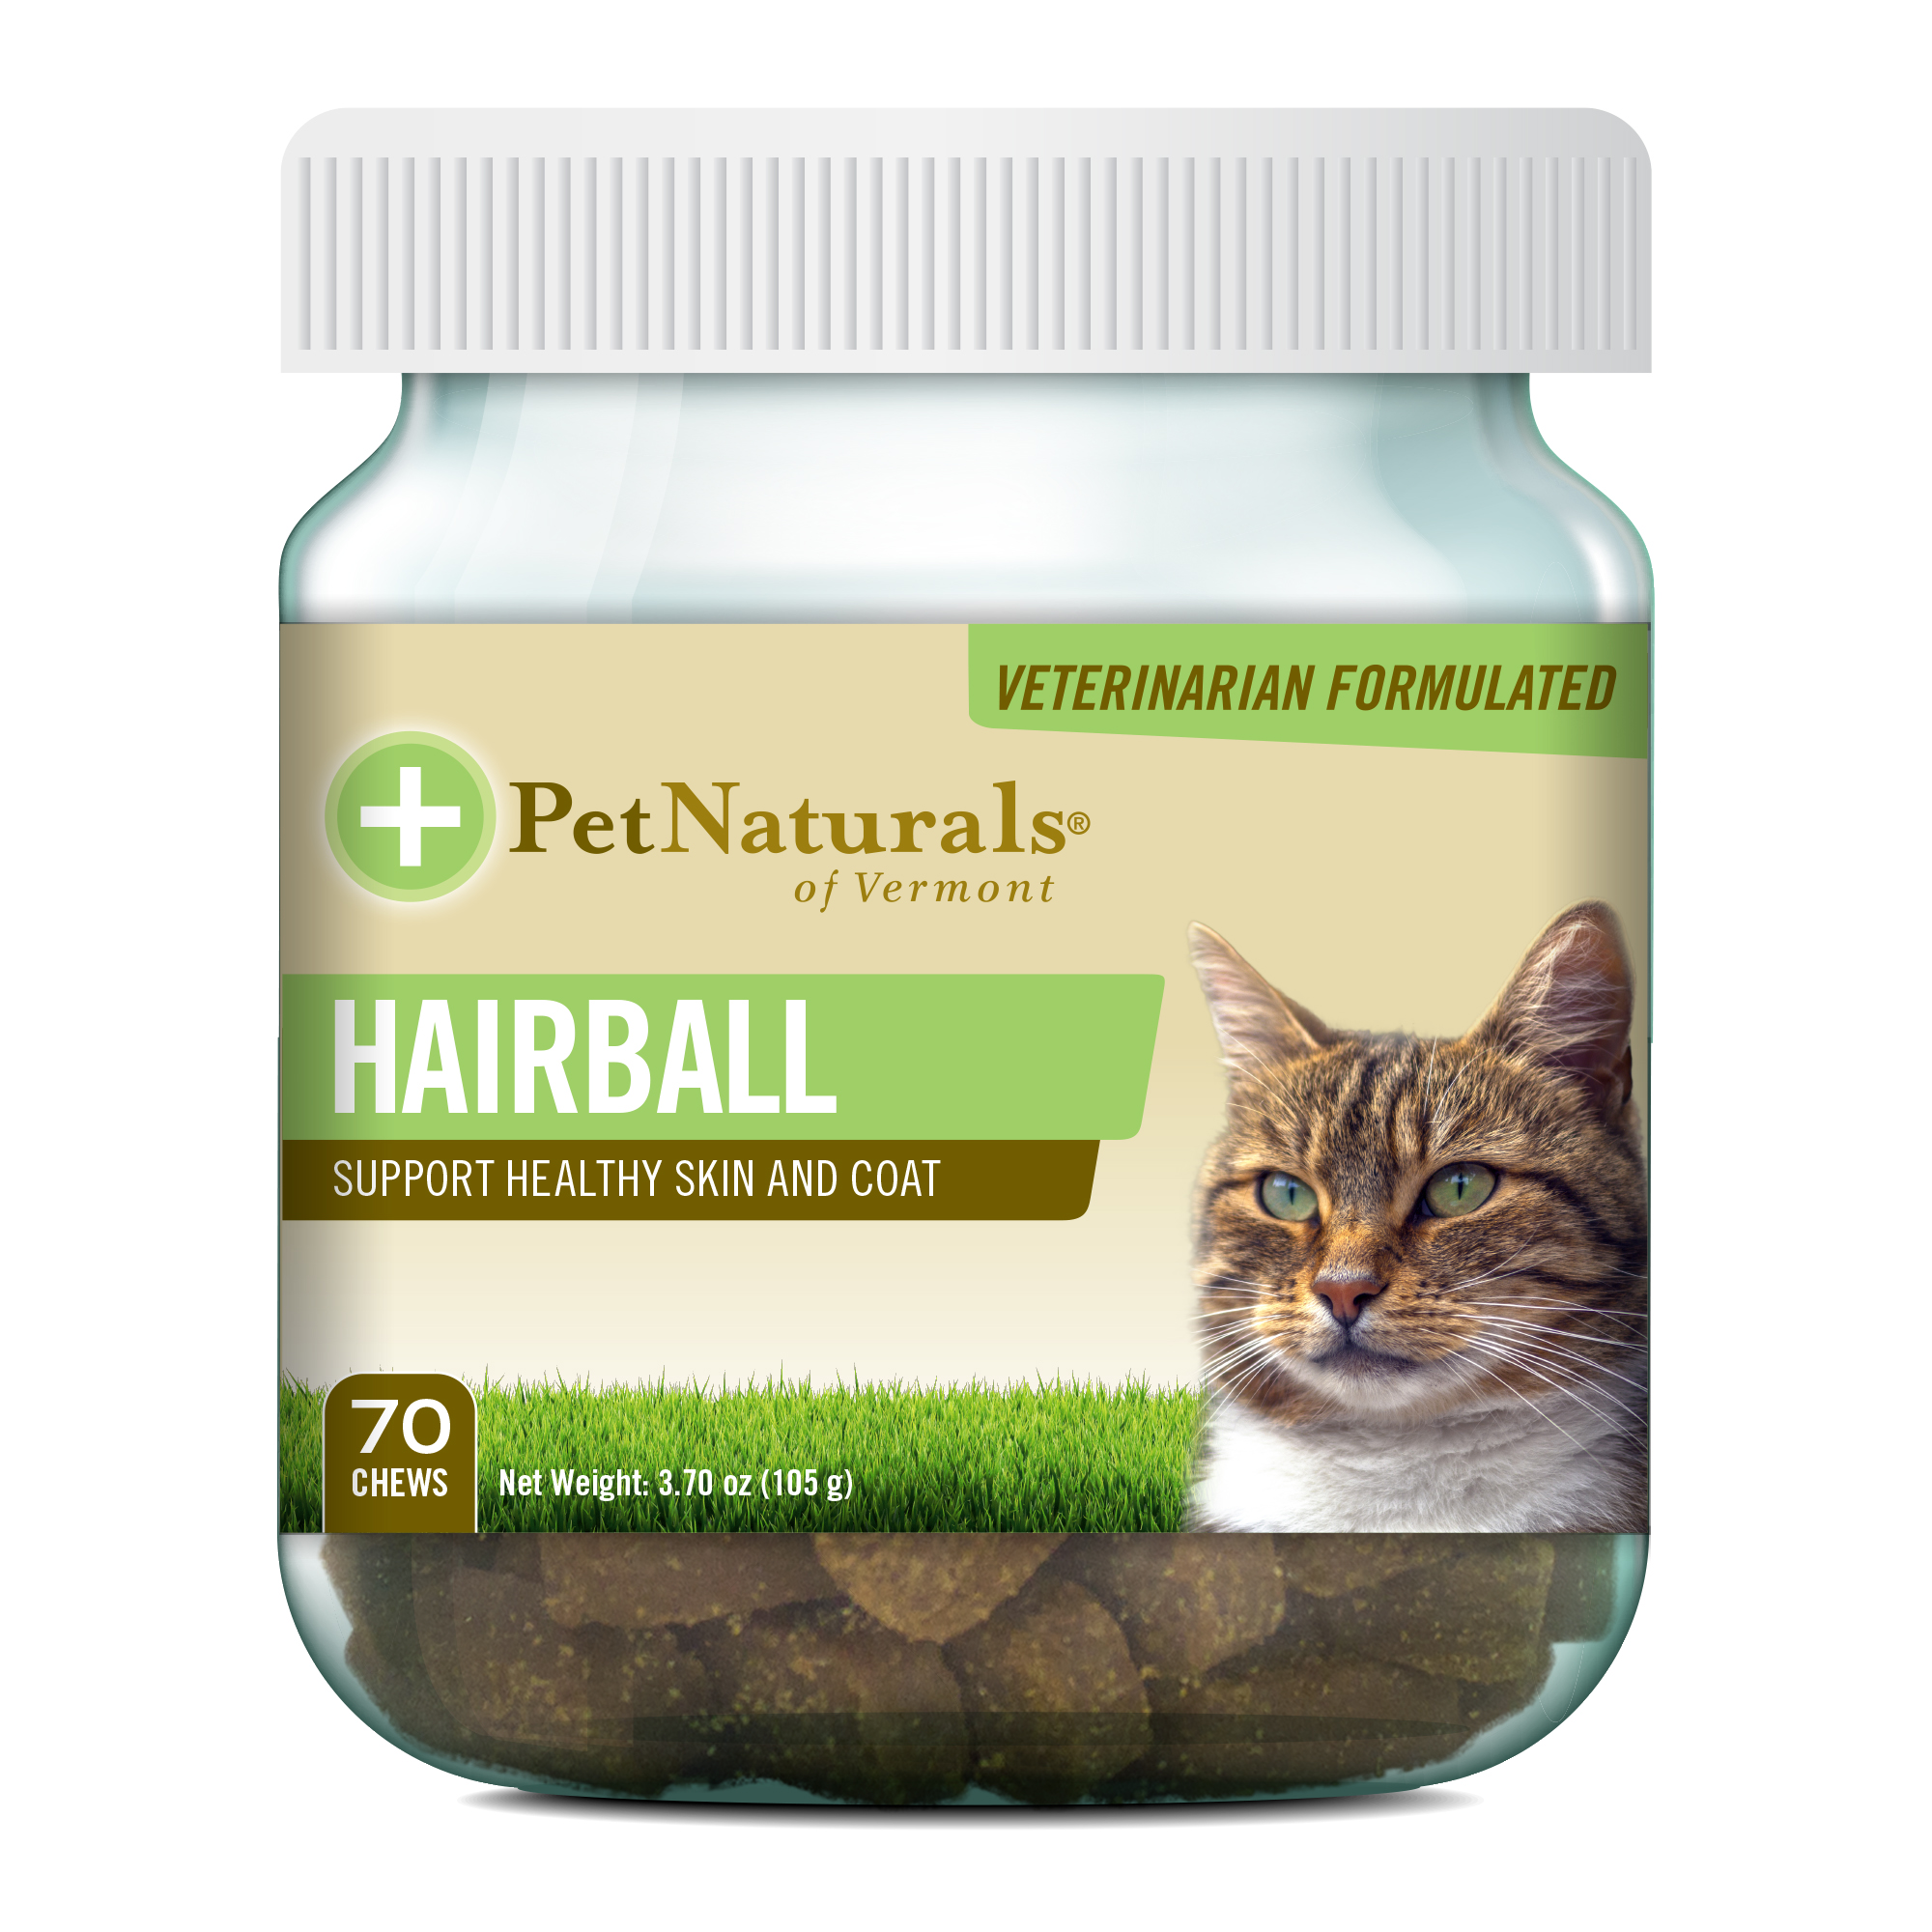 Pet Naturals of Vermont - Hairball, Daily Digestive, Skin and Coat Support for Cats, 70 Bite-Sized Chews